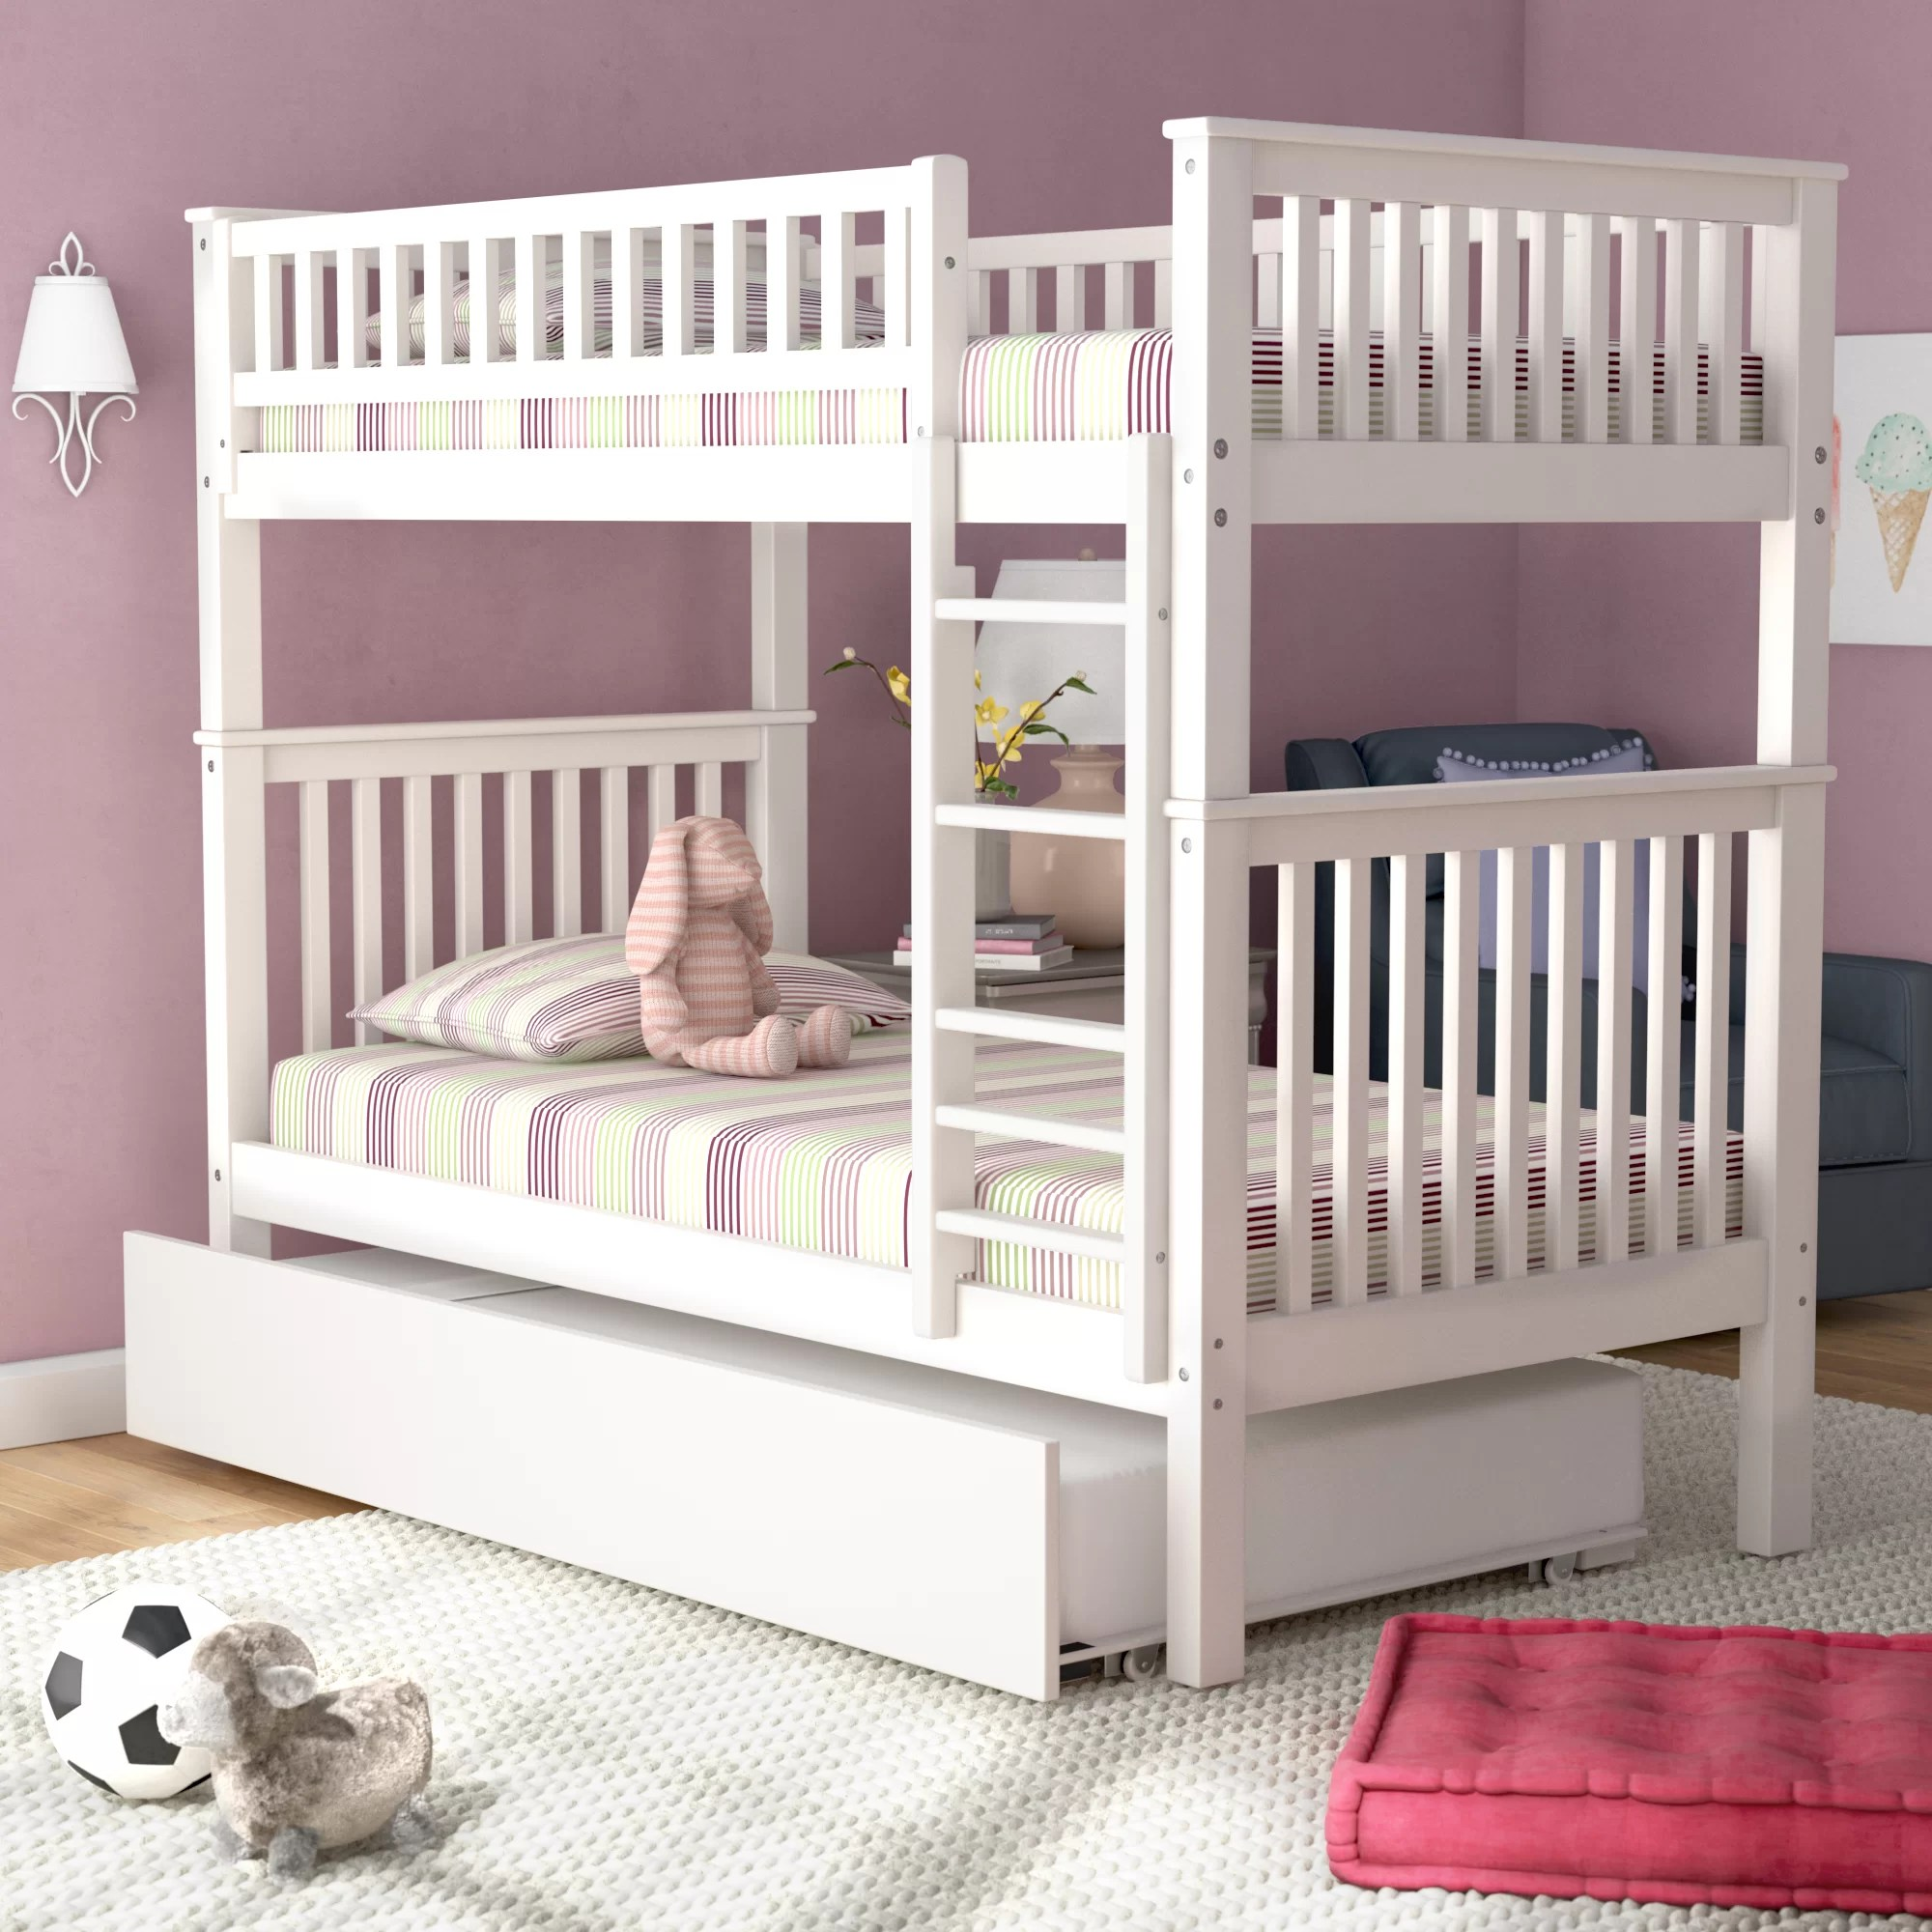 Snooze Bunk Beds Shultis Twin Over Twin Bunk Bed With Trundle